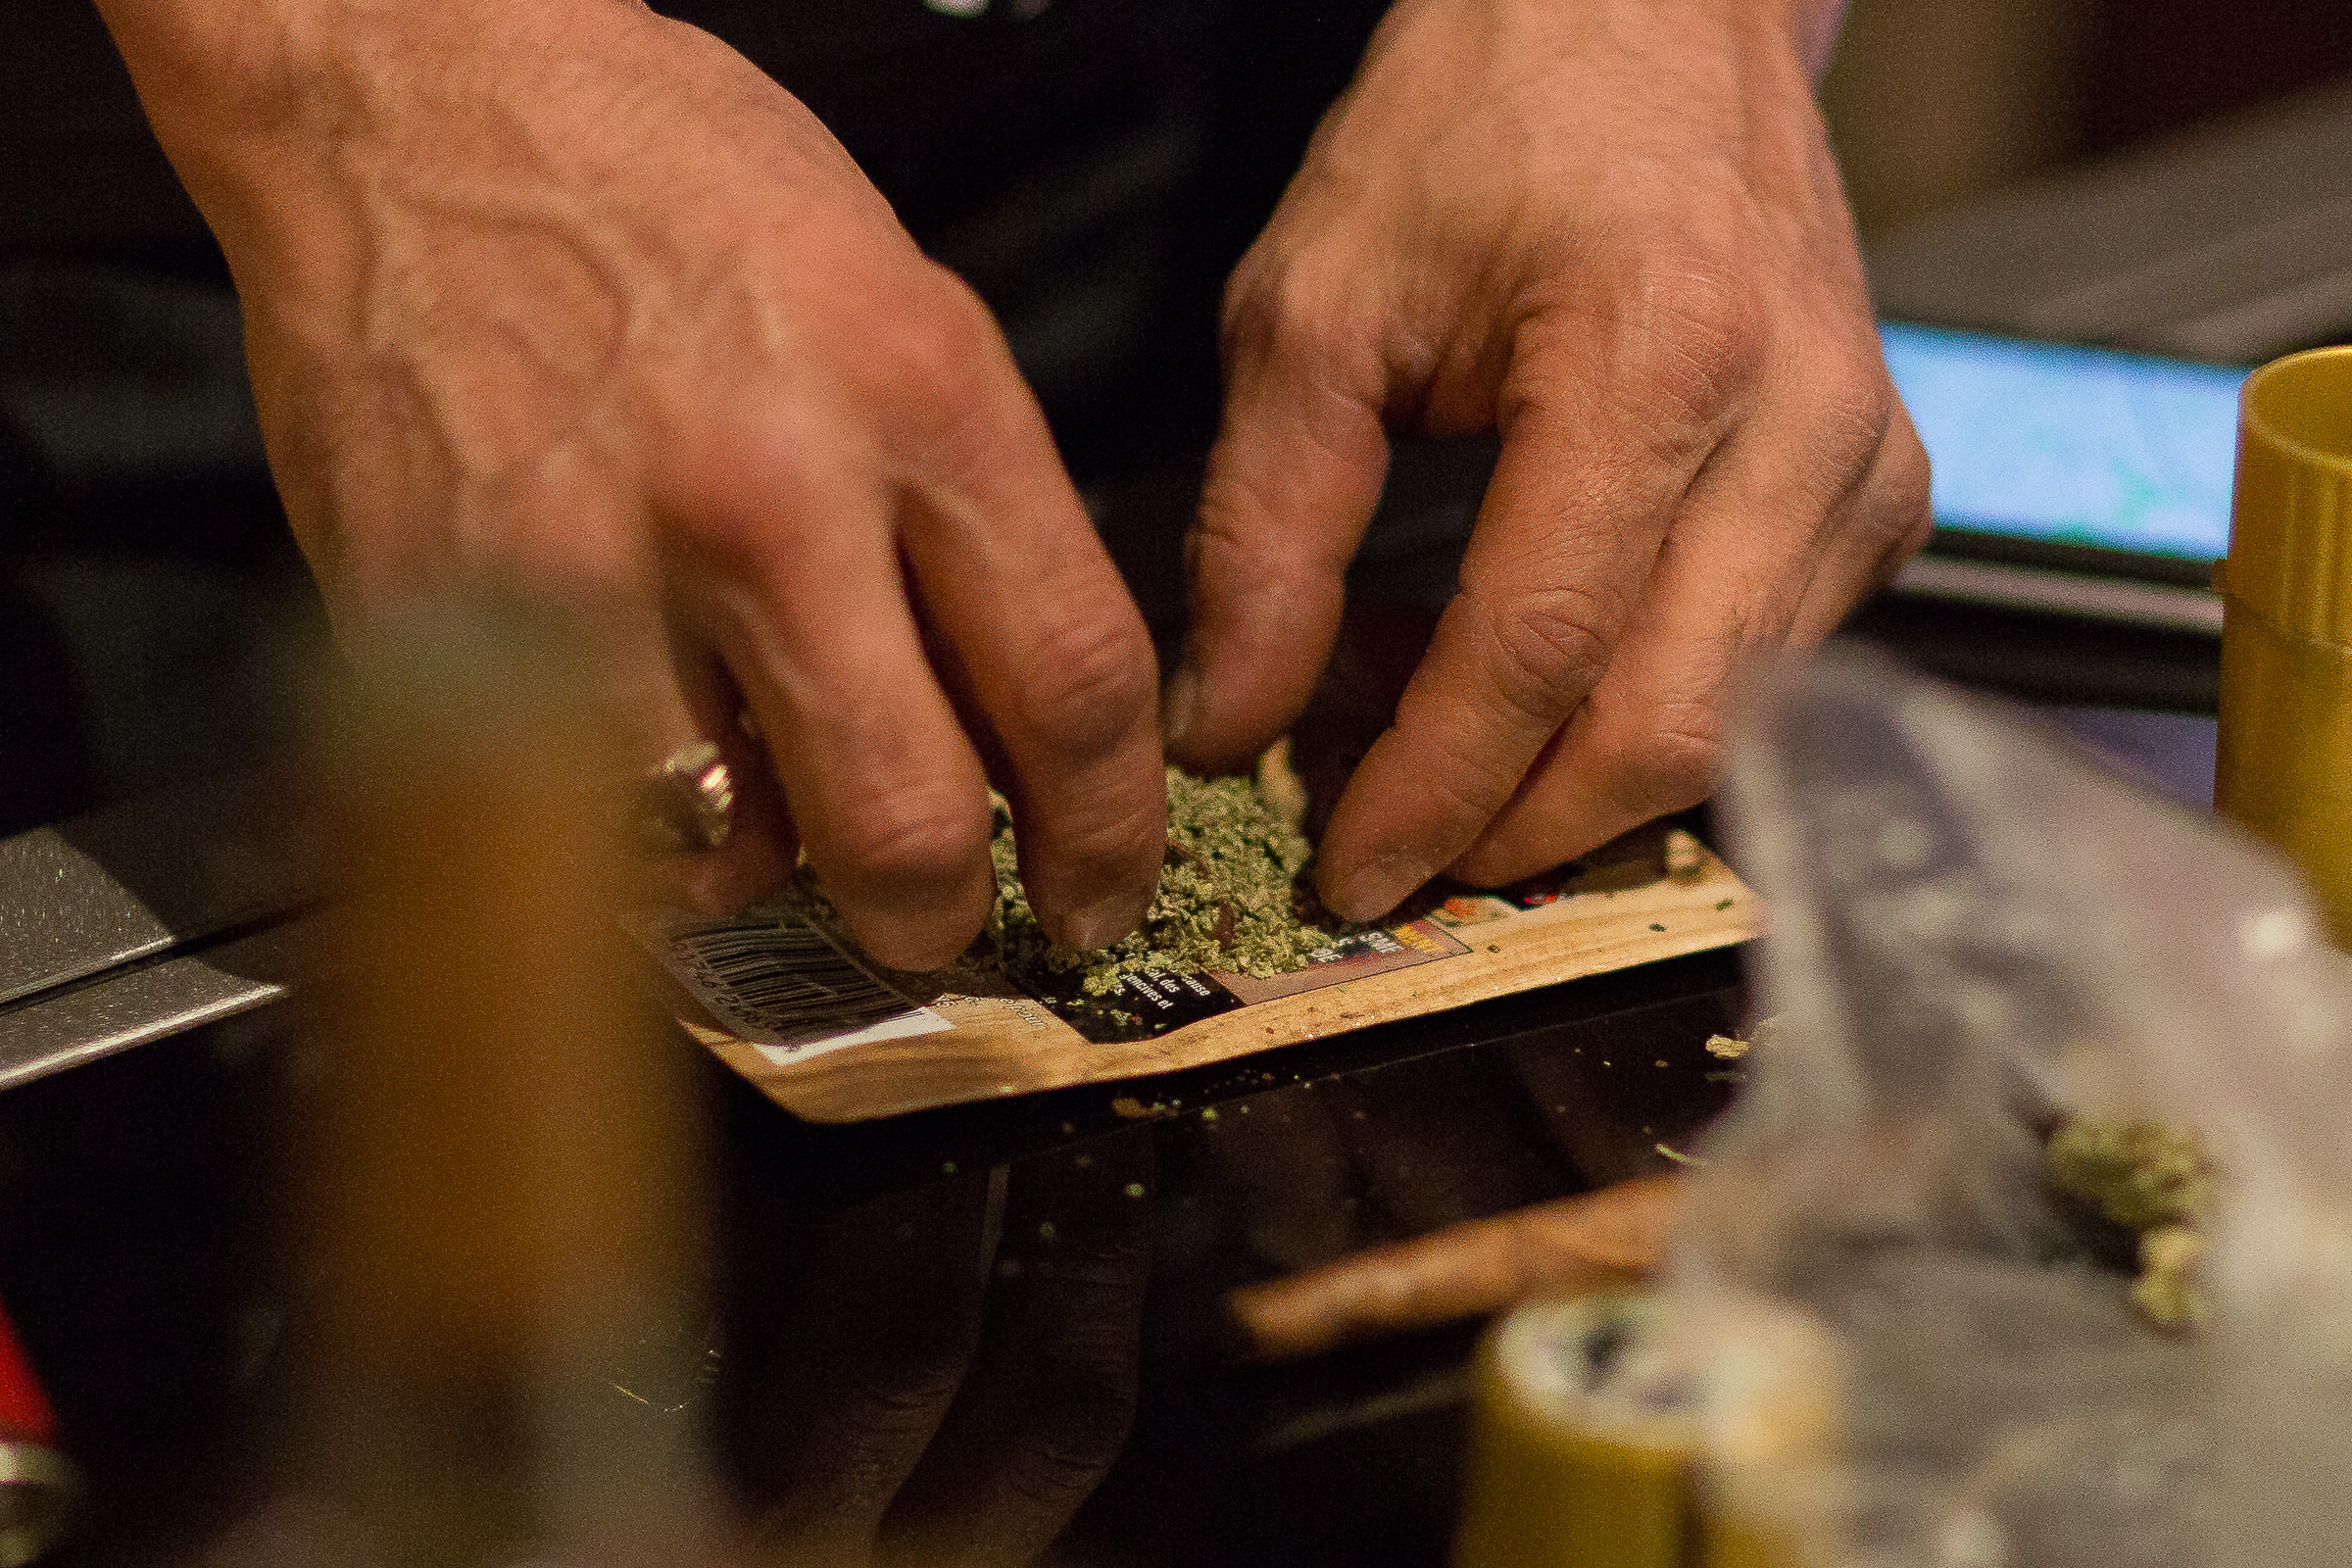 we asked experts what really happens when you mix weed with anti